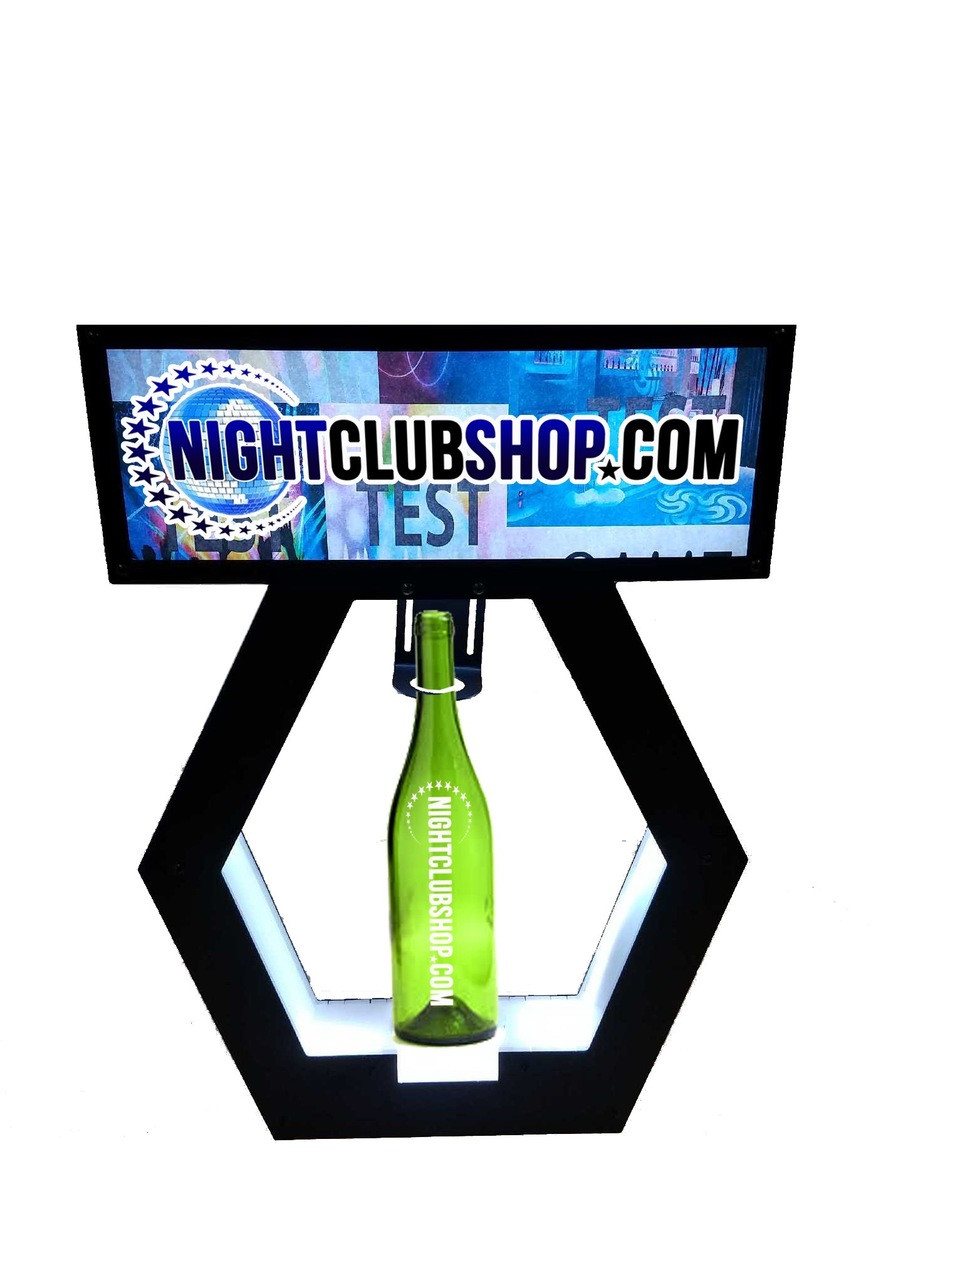 UNIVERSAL-BANNER TOP-PRESENTER-NAME-CHANGER- VIP-SIGN-LED-Light up-CHAMPAGNE-BOTTLE-SERVICE-DELIVERY-PRESENTATION-TRAY